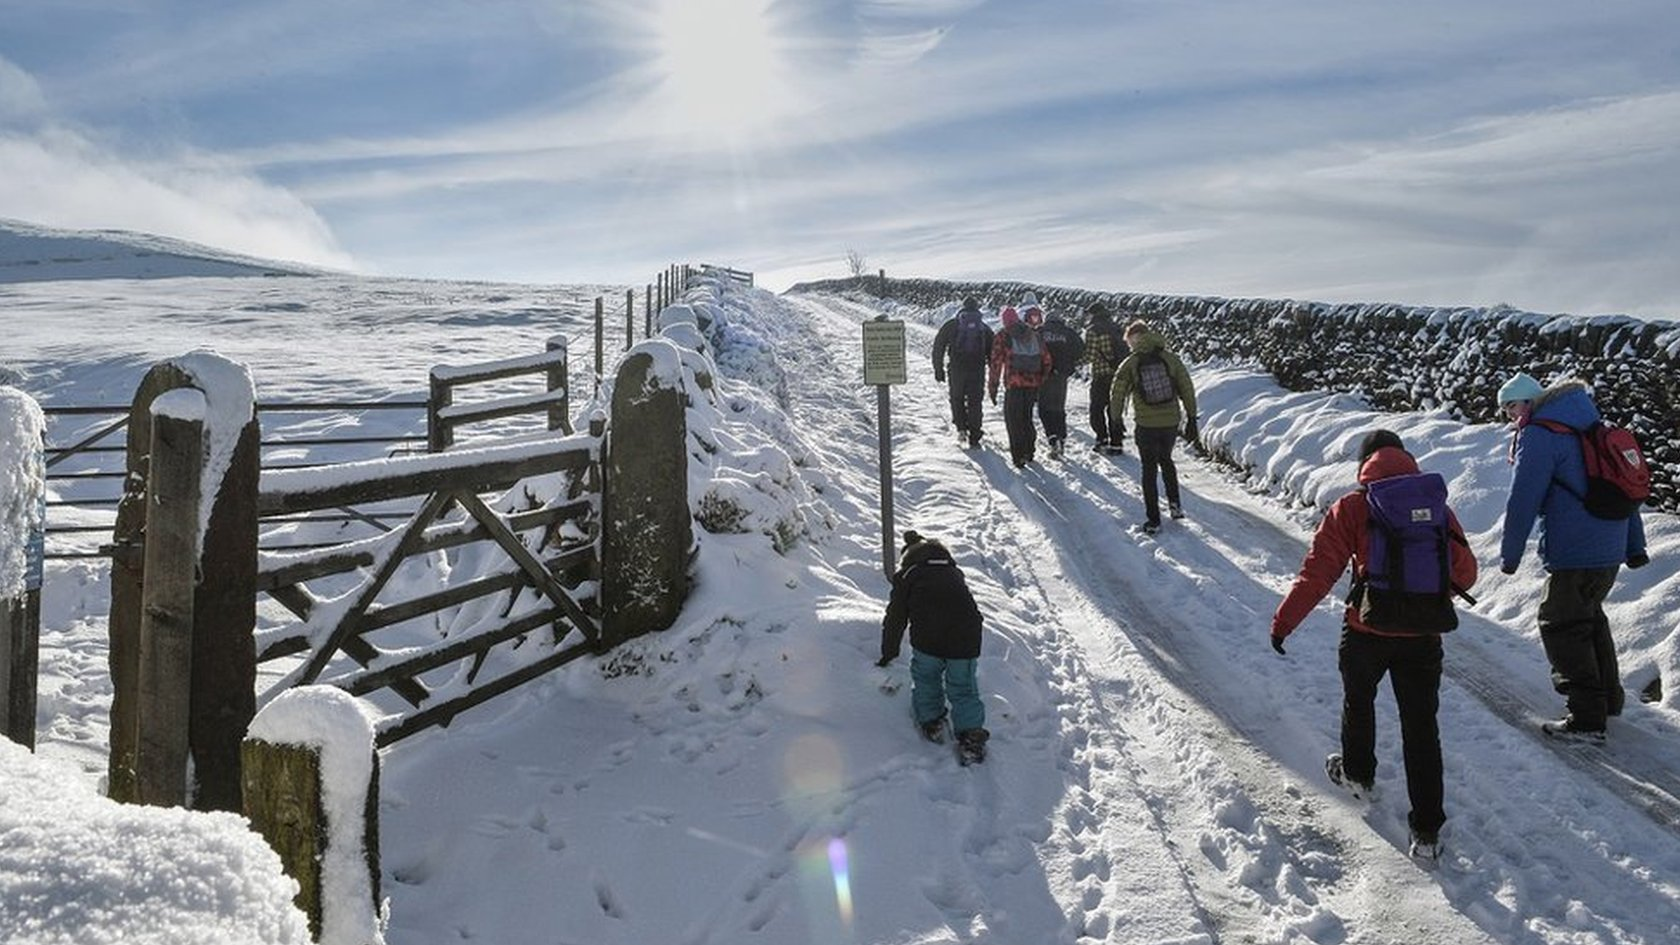 Britain to freeze this April according to UK weather forecast